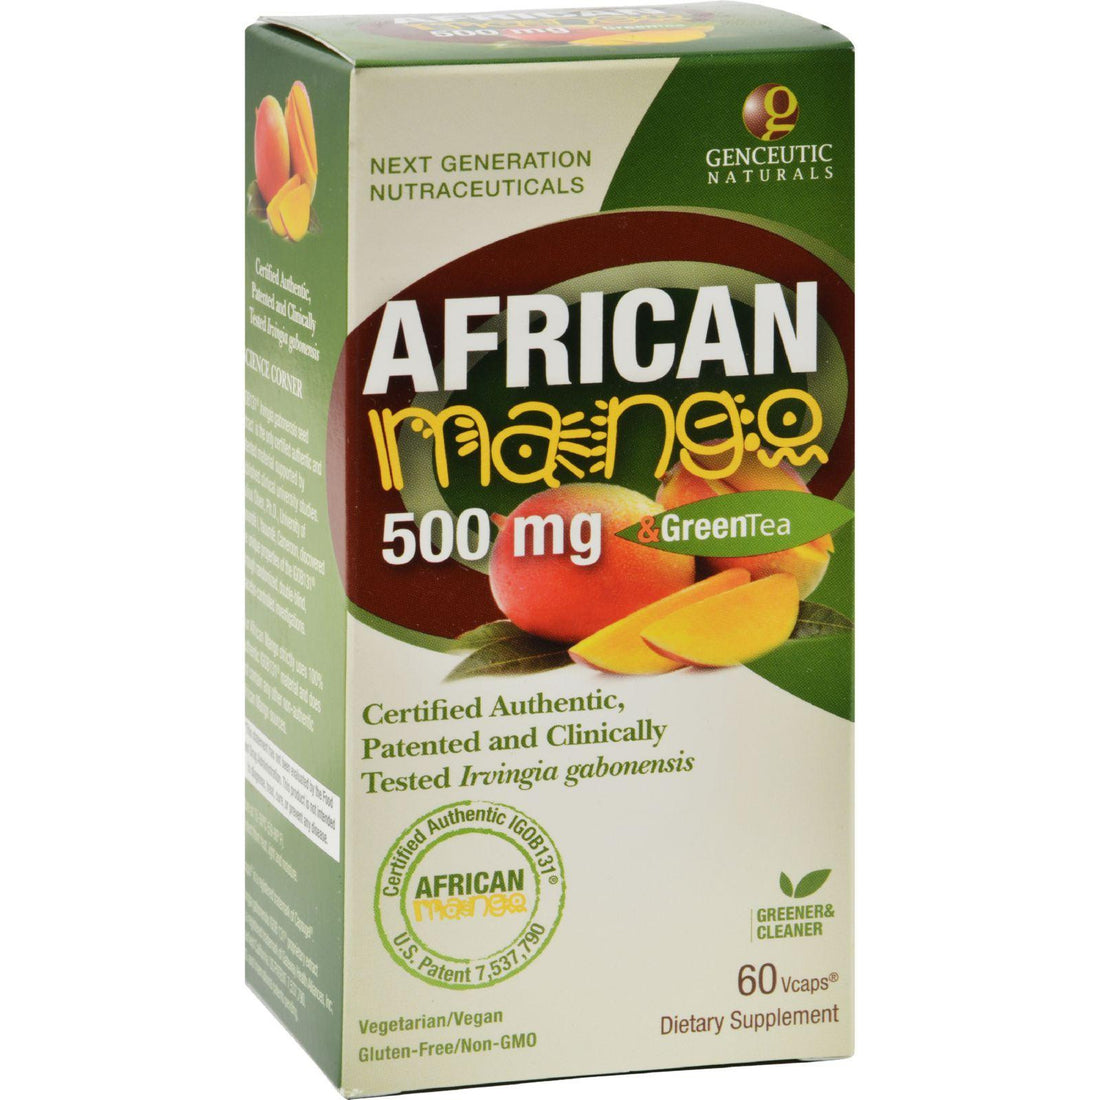 Mother Mantis: Genceutic Naturals African Mango Plus Green Tea - 500 Mg - 60 Vcaps Genceutic Naturals